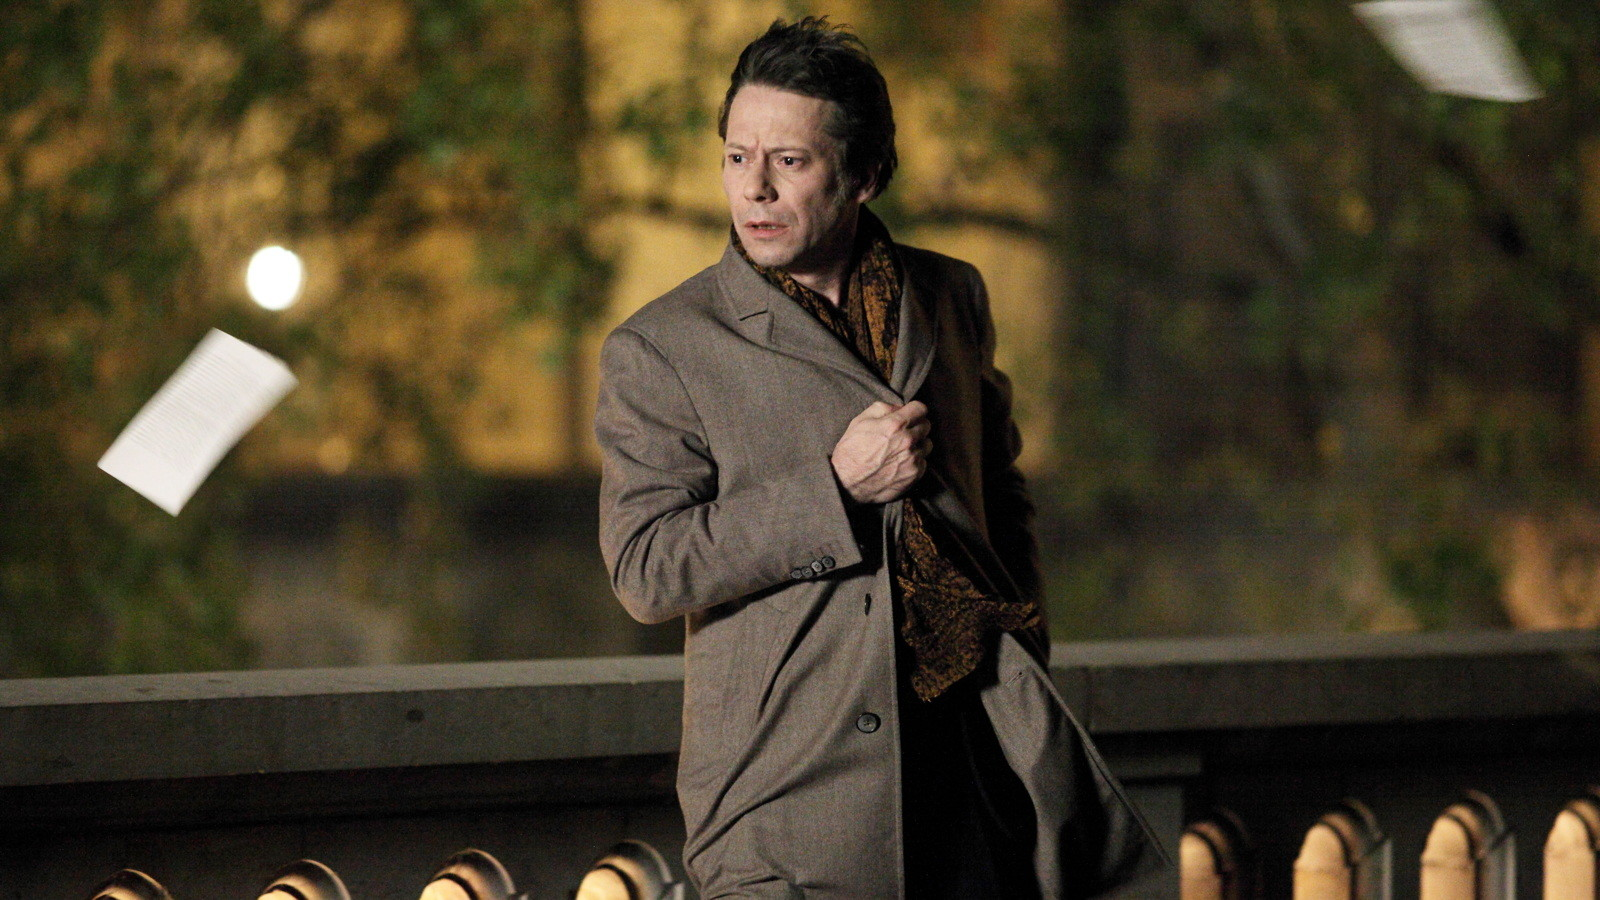 Mathieu Amalric as a mature (at least in age) Paul Dedalus